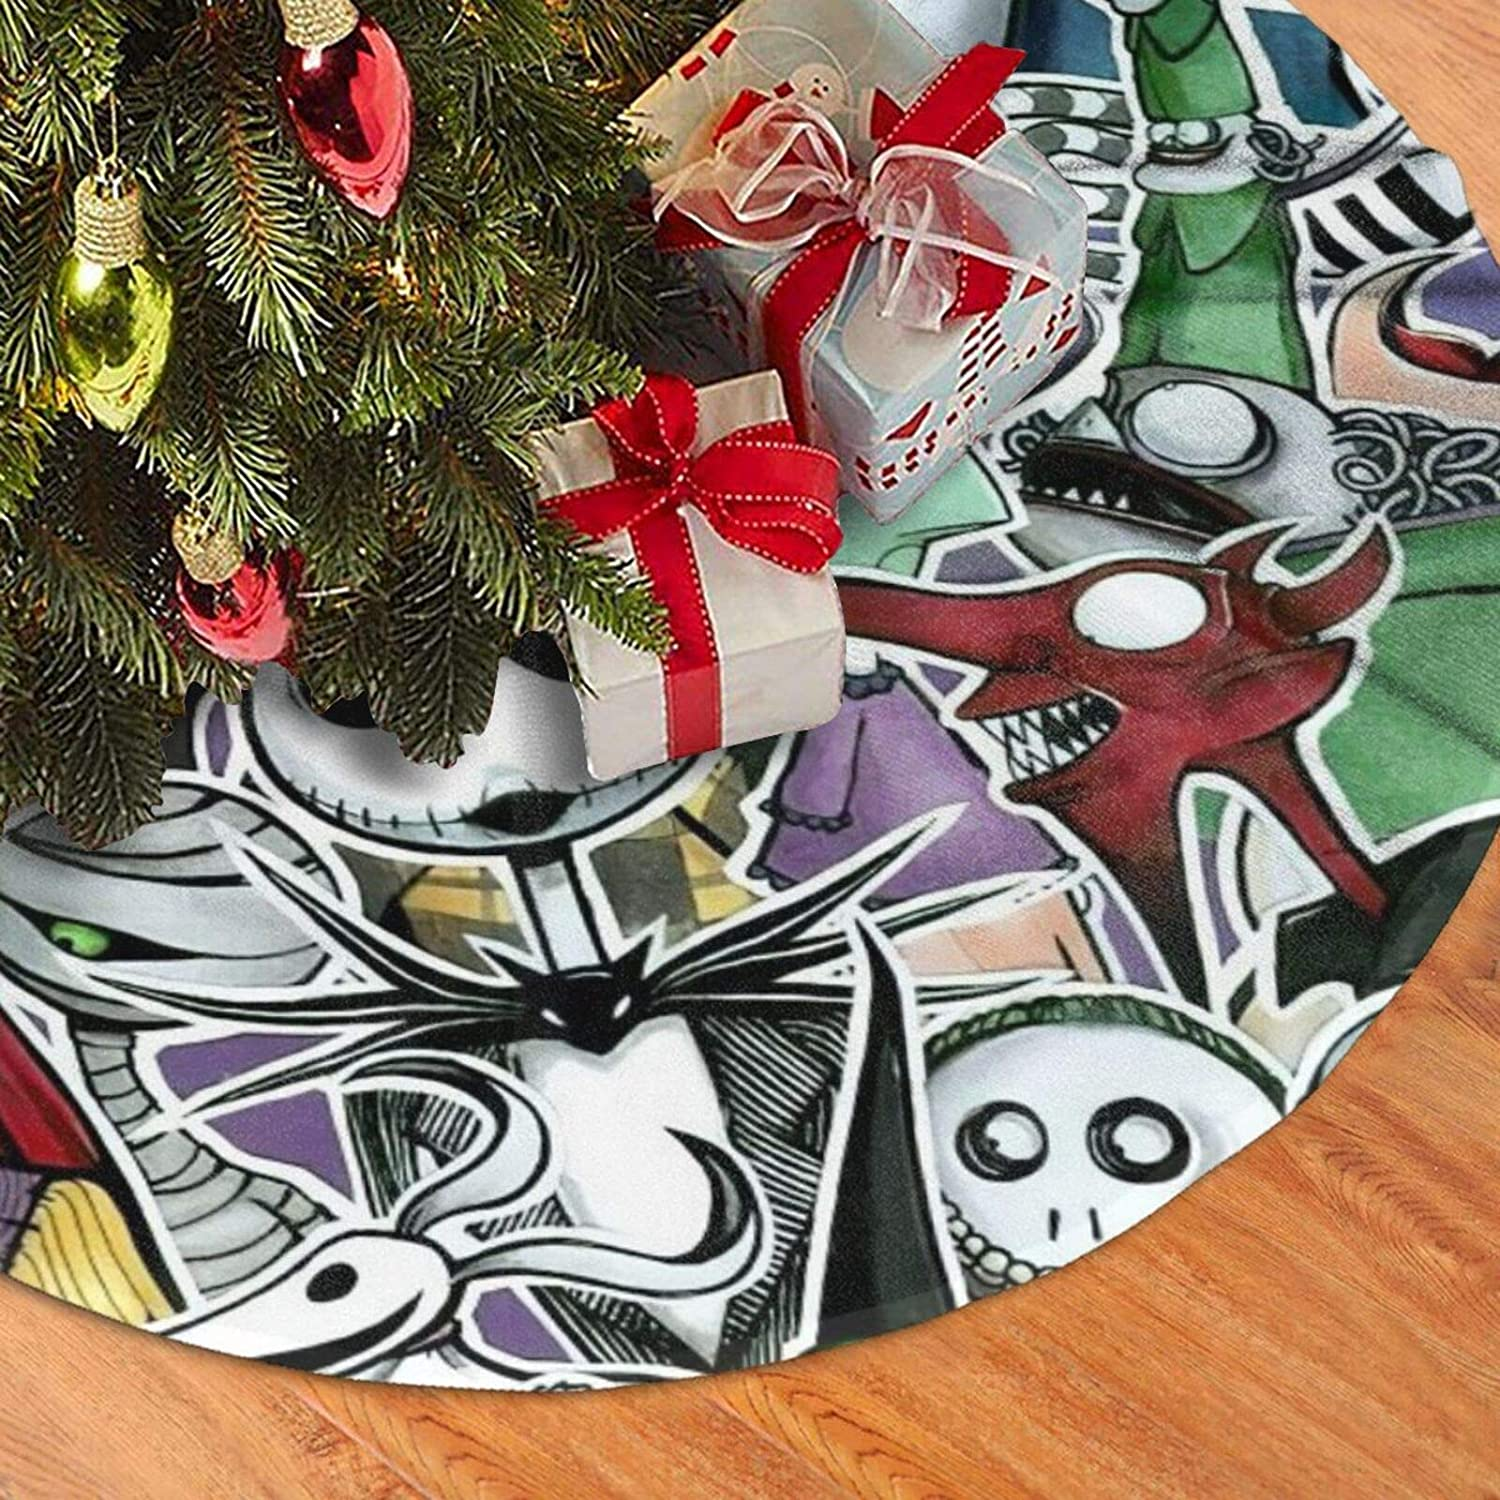 Details about  /Ornament Kit Living Room Decor Ornaments Room Decor 2Pcs for Holiday Birthday